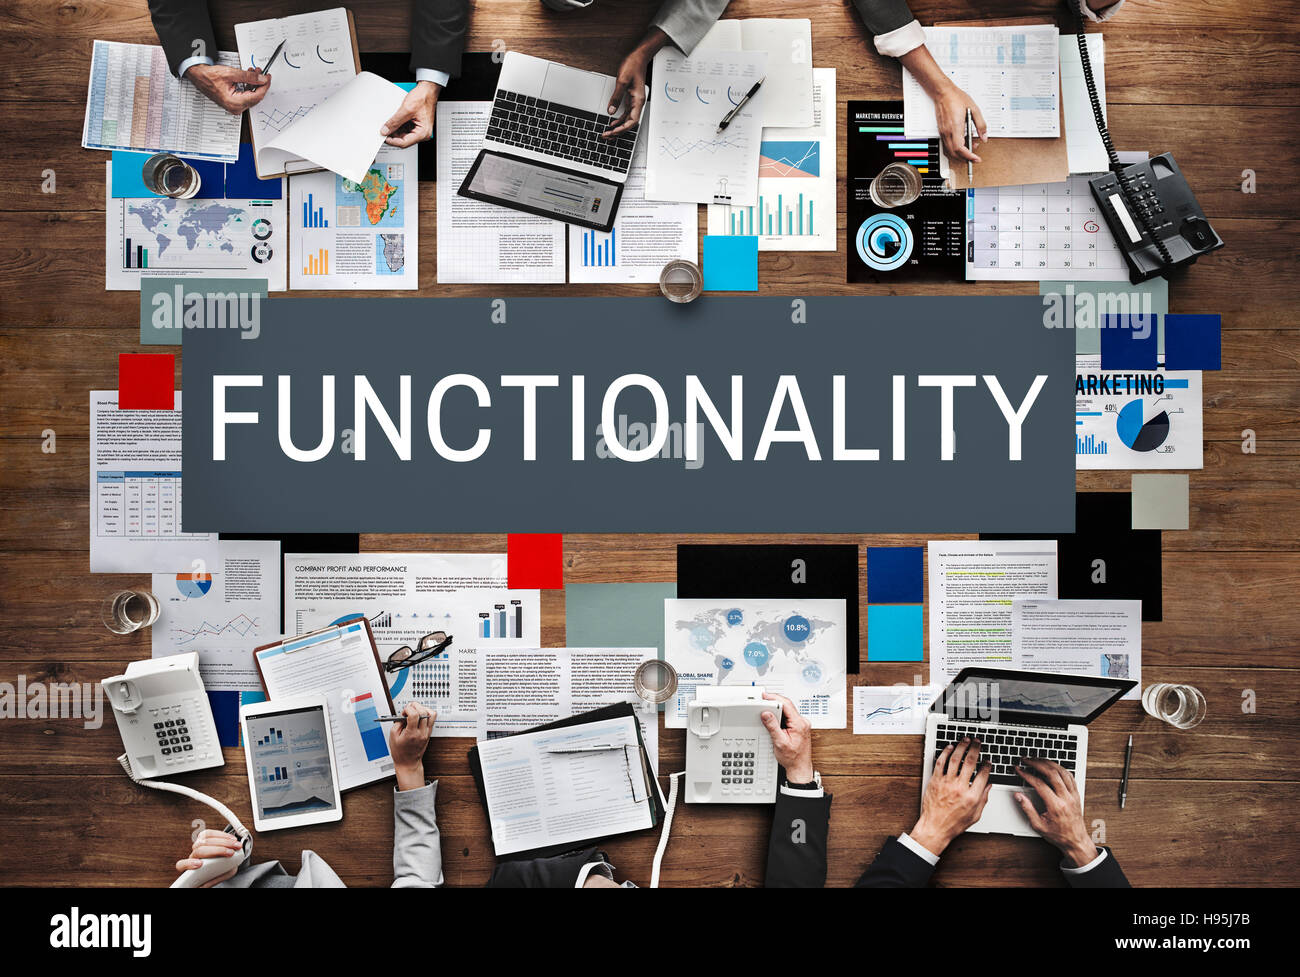 Functionality Digital Computer System Practical Concept - Stock Image